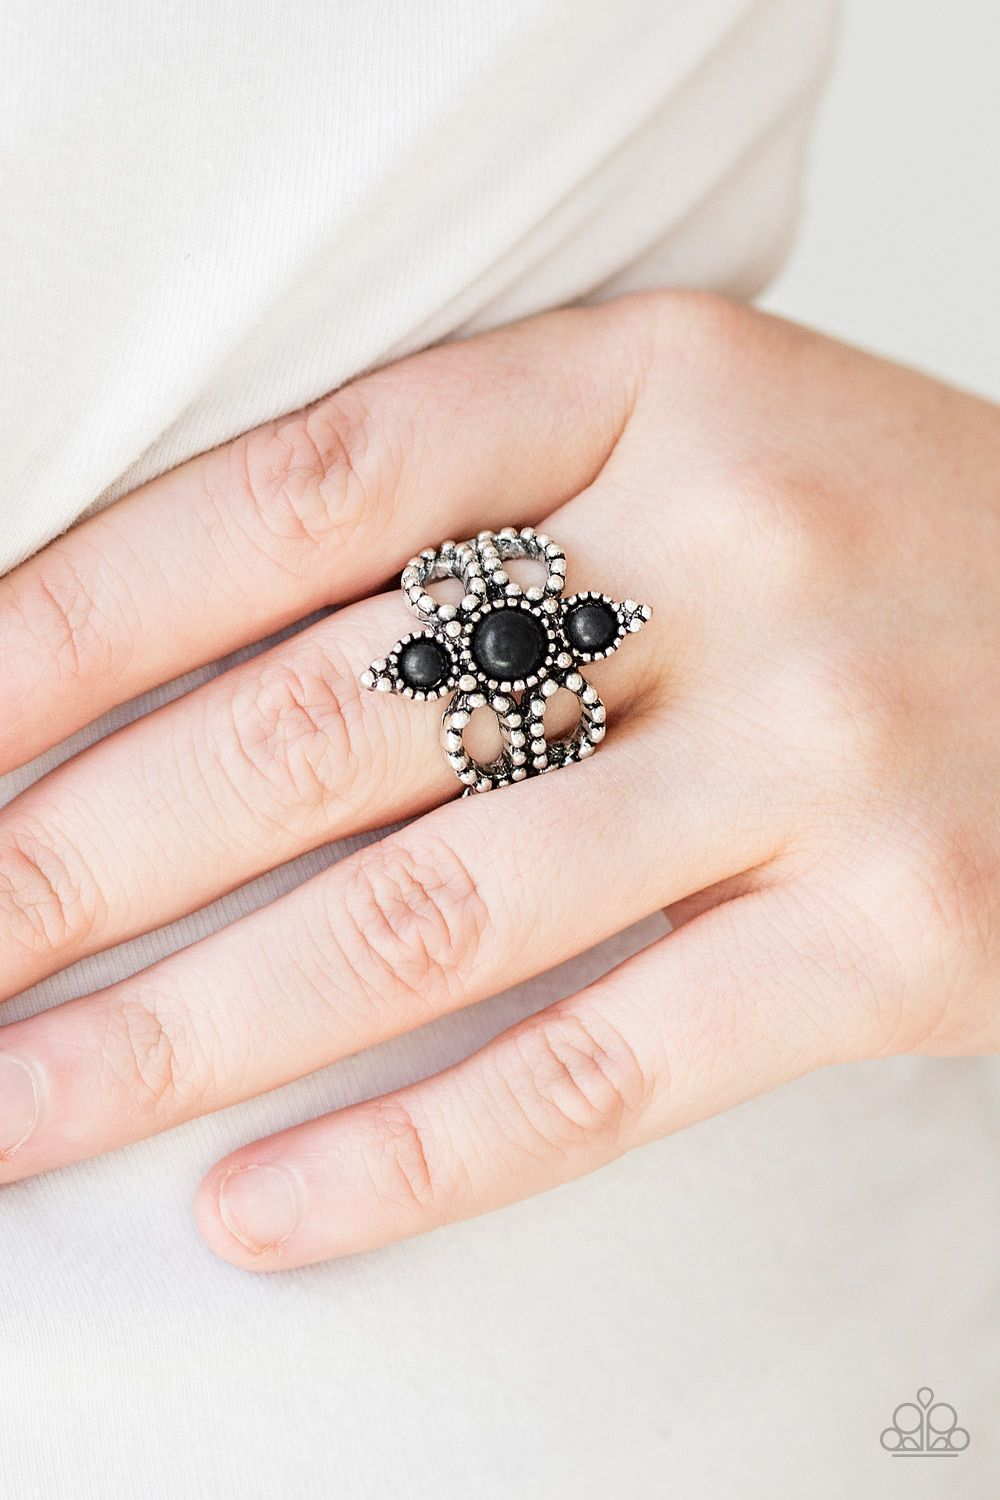 Paparazzi Ring Outback Oasis Black Dainty Black Stones Stack Down The Center Of A Frilly Silver Band Ra Amazing Jewelry Affordable Jewelry Fashion Rings